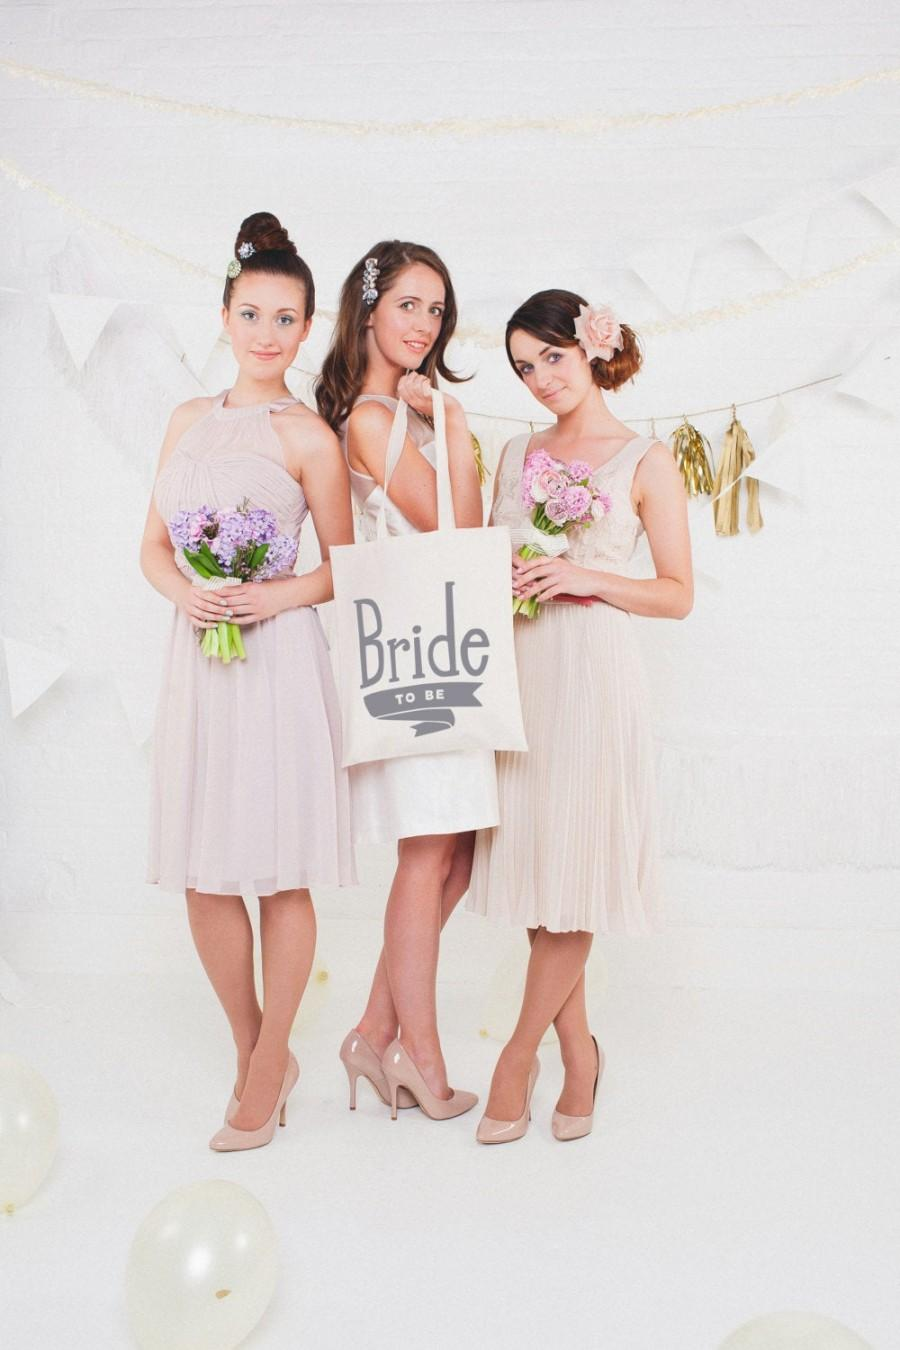 Hochzeit - Wedding Tote Bag - Bride Tote - Bachelorette Party Bags - Bridal Party Tote - Bride to be Gift - Bride to Be Tote Bag - bachelorette party